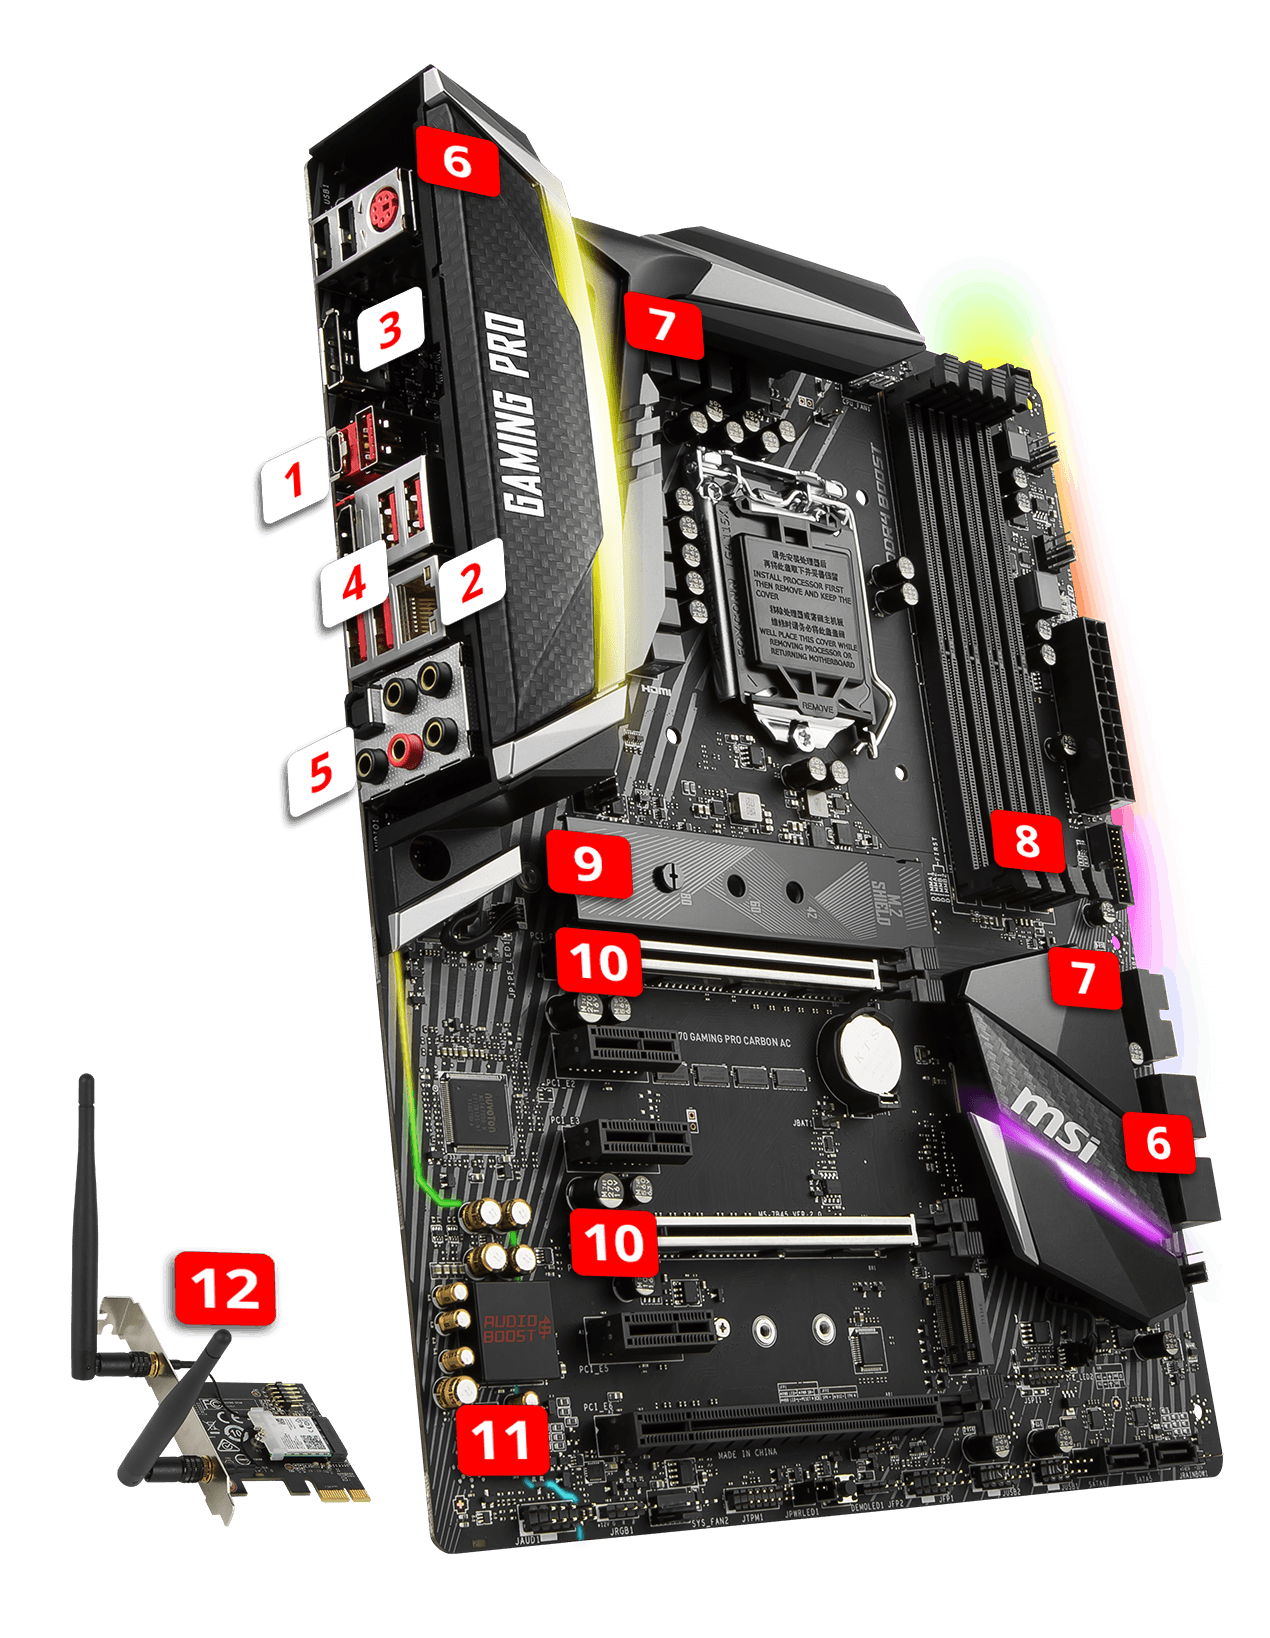 MSI Z370 GAMING PRO CARBON AC overview